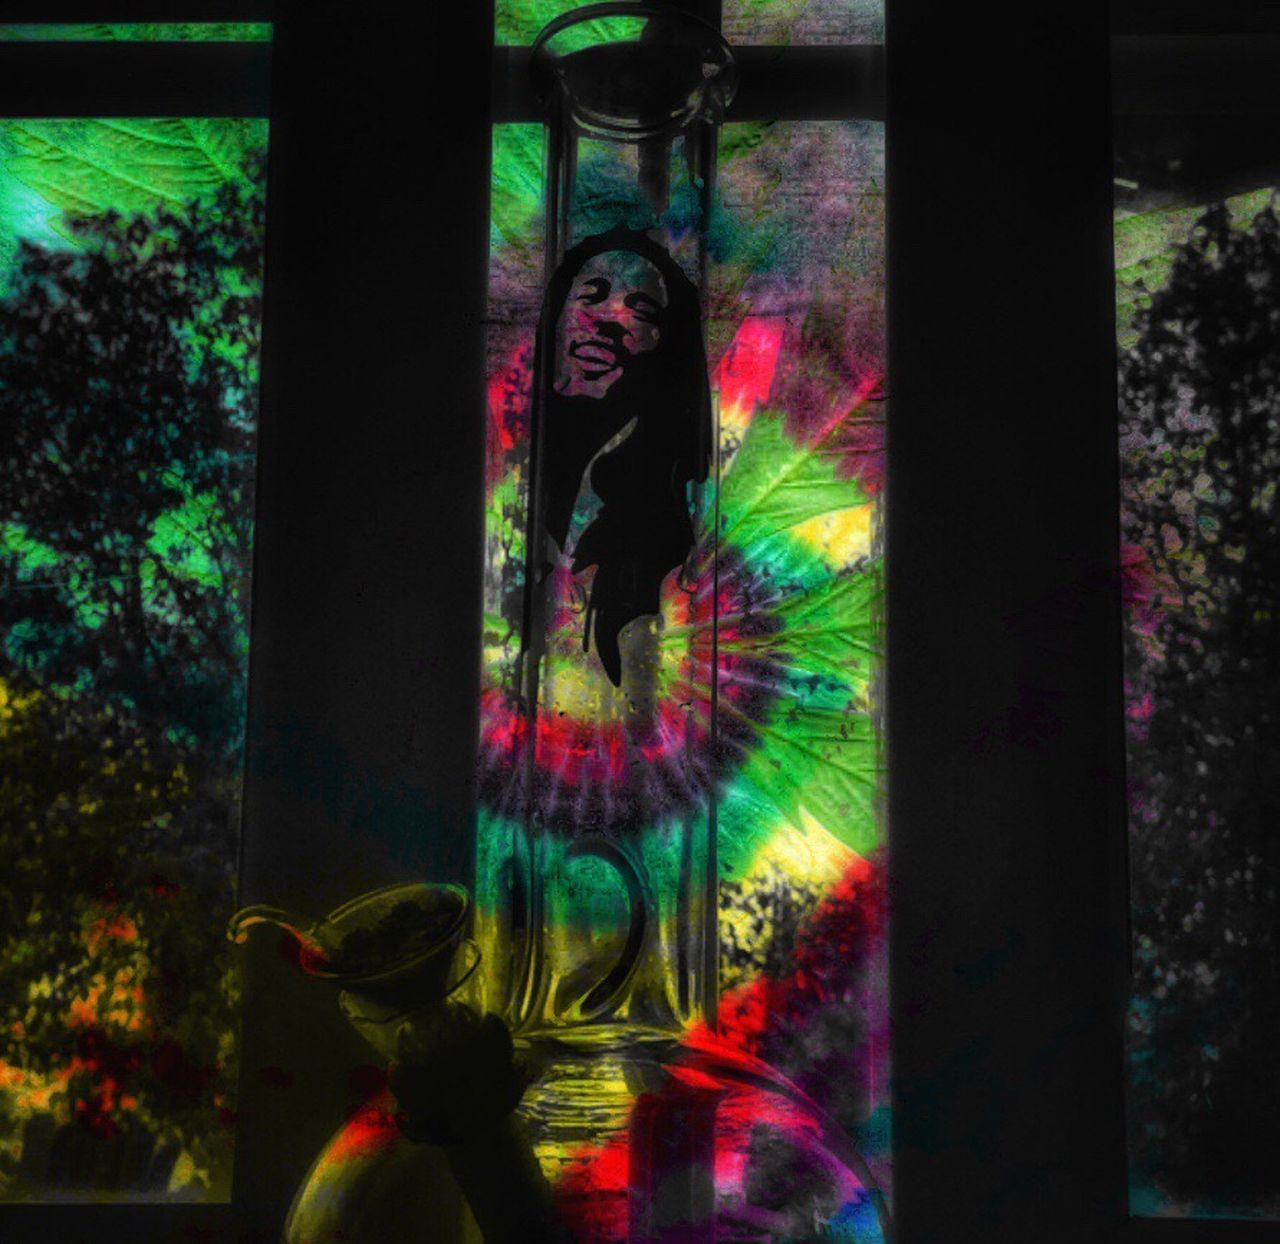 Having too much fun with 'Double Exposure' or in this case 'Triple Exposure' haha...Rasta Tye Dye, a Cannabis Leaf, and my bong Bob (Marley)...Makes for a pretty tripped out pic!! Real People One Person Multi Colored Lifestyles Leisure Activity Indoors  Day People Bong Trippy Bob Marley RASTA Tyedye Peace Love Happiness Come Together Can't We All Get A Bong? Pot Leaf Don't Panic It's Organic Fire Cali Green California Dreaming